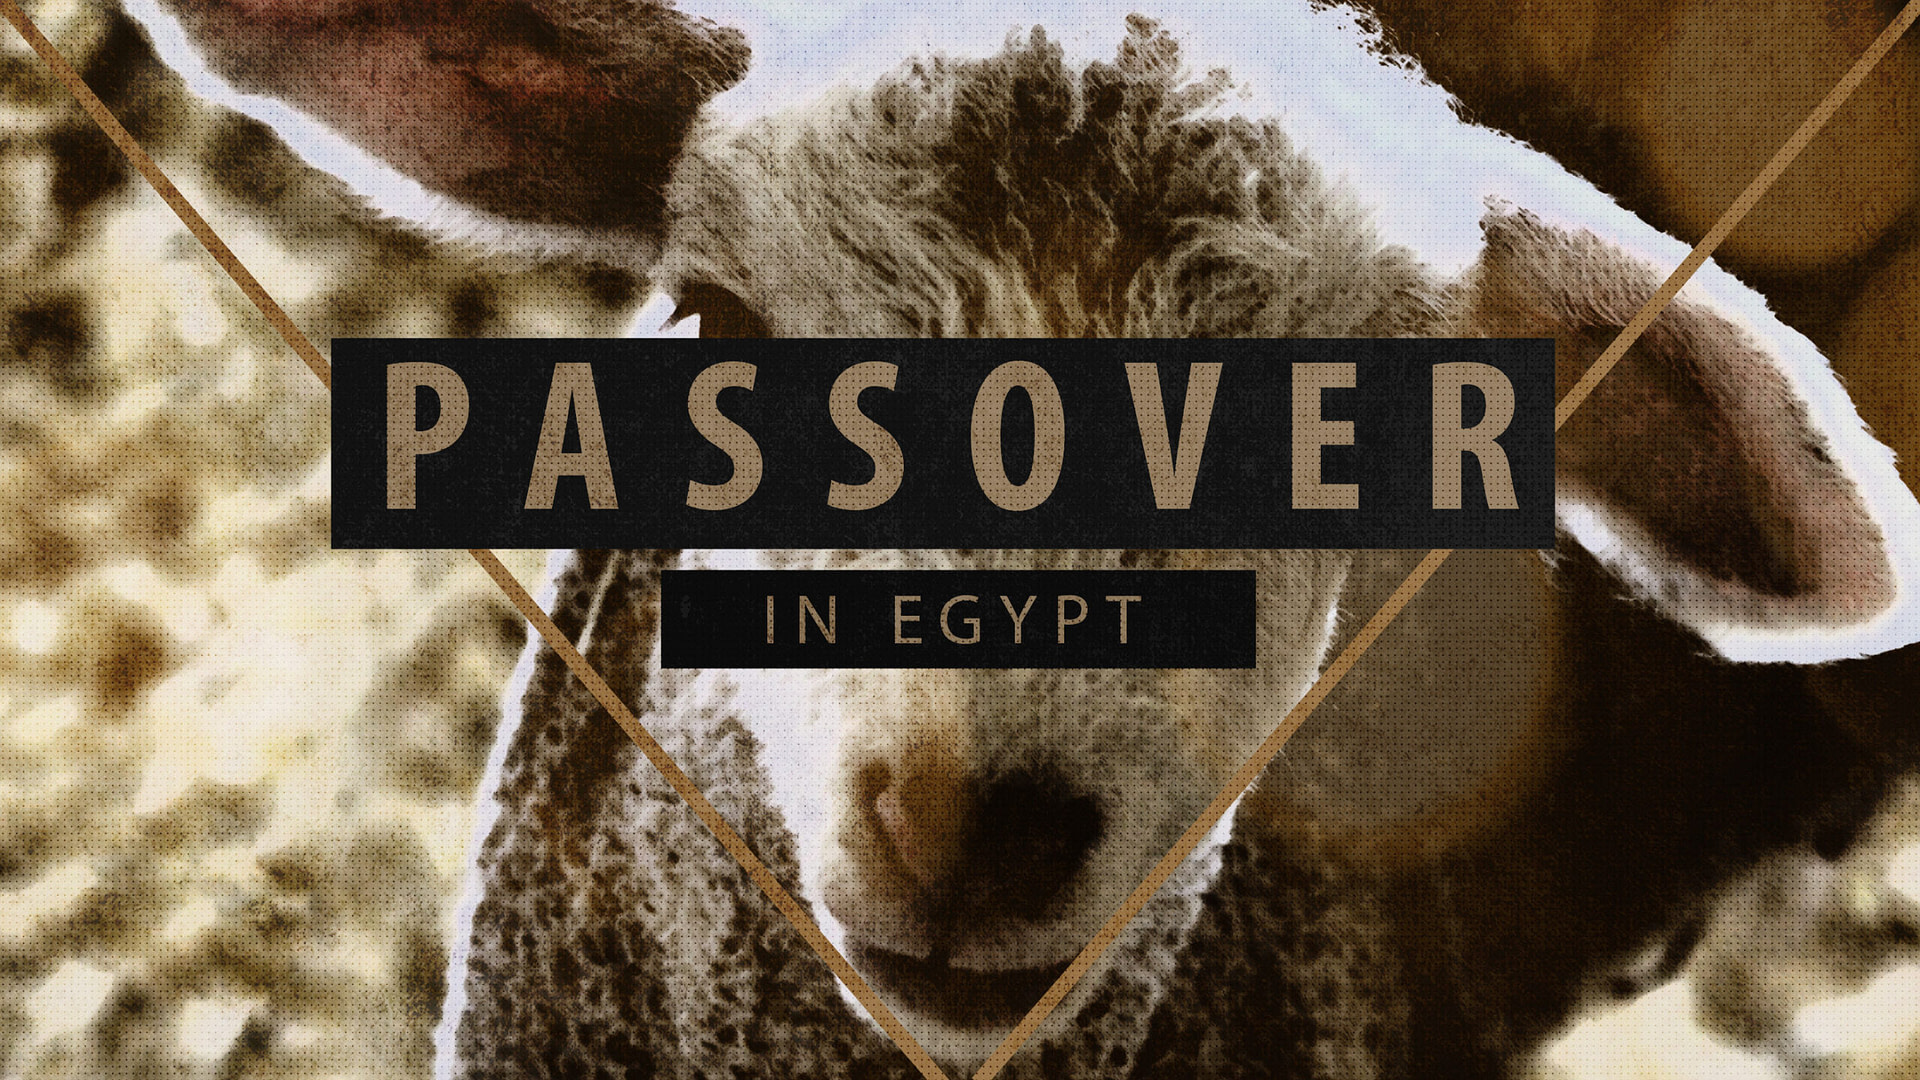 Passover in Egypt | Messianic Passover Teaching Series